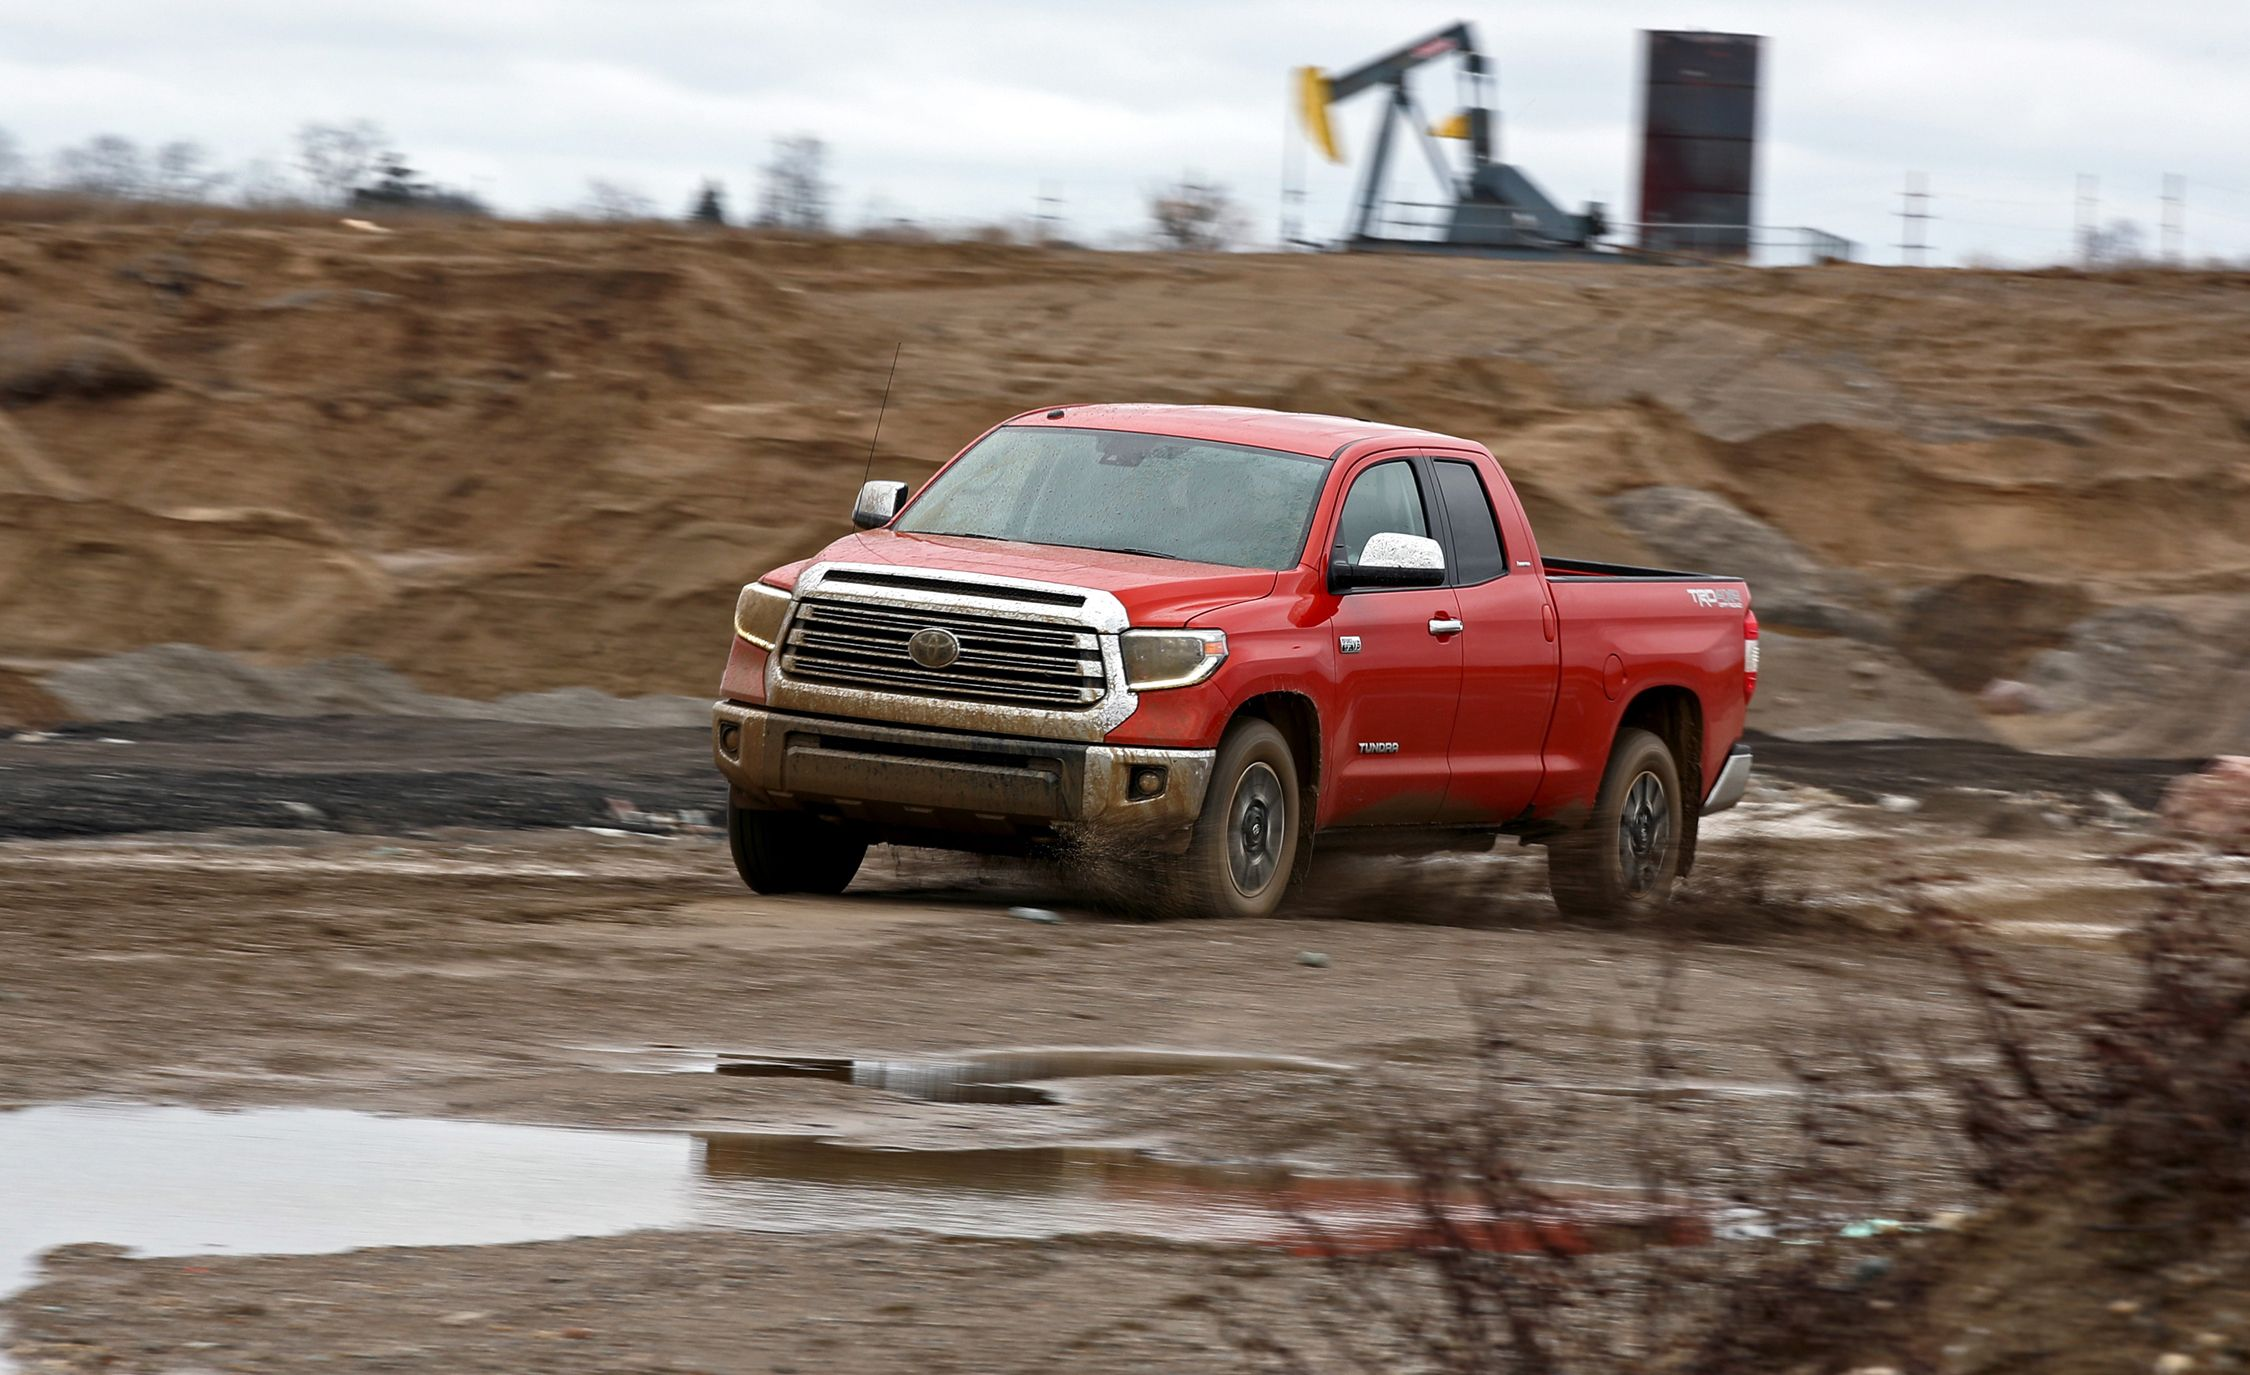 2018 Toyota Tundra 5 7L 4x4 Double Cab Test: Time for a Change